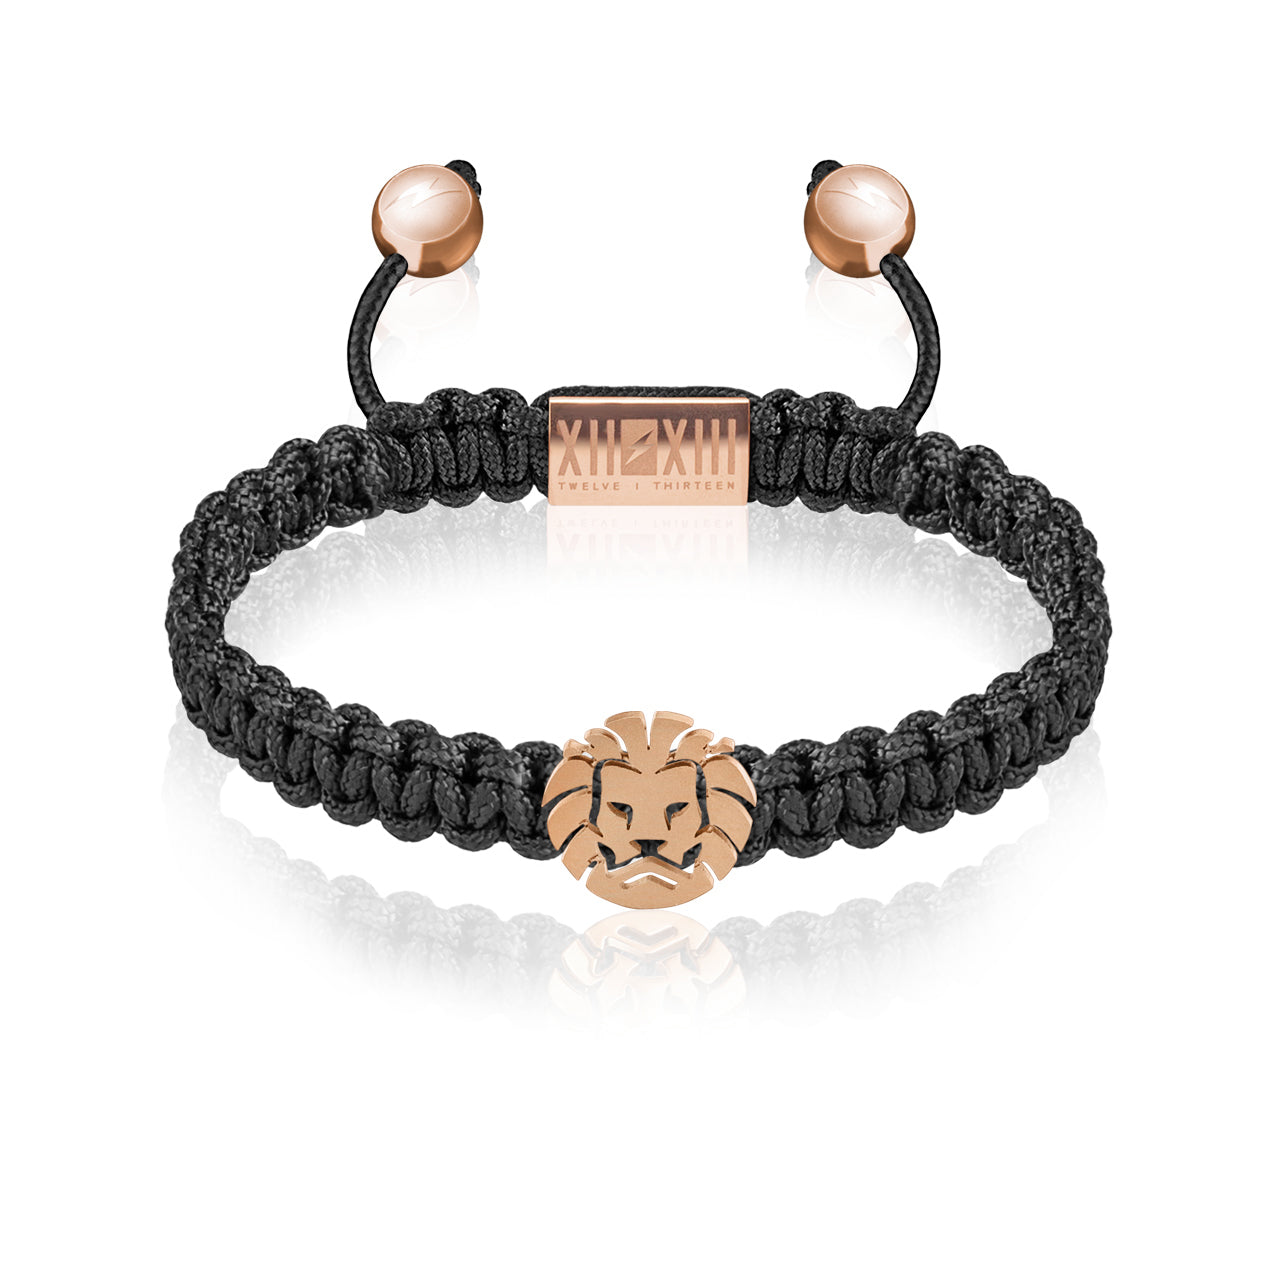 WATCHANISH by Twelve Thirteen Jewelry macramé braided bracelet - Black/Matte Rose Gold